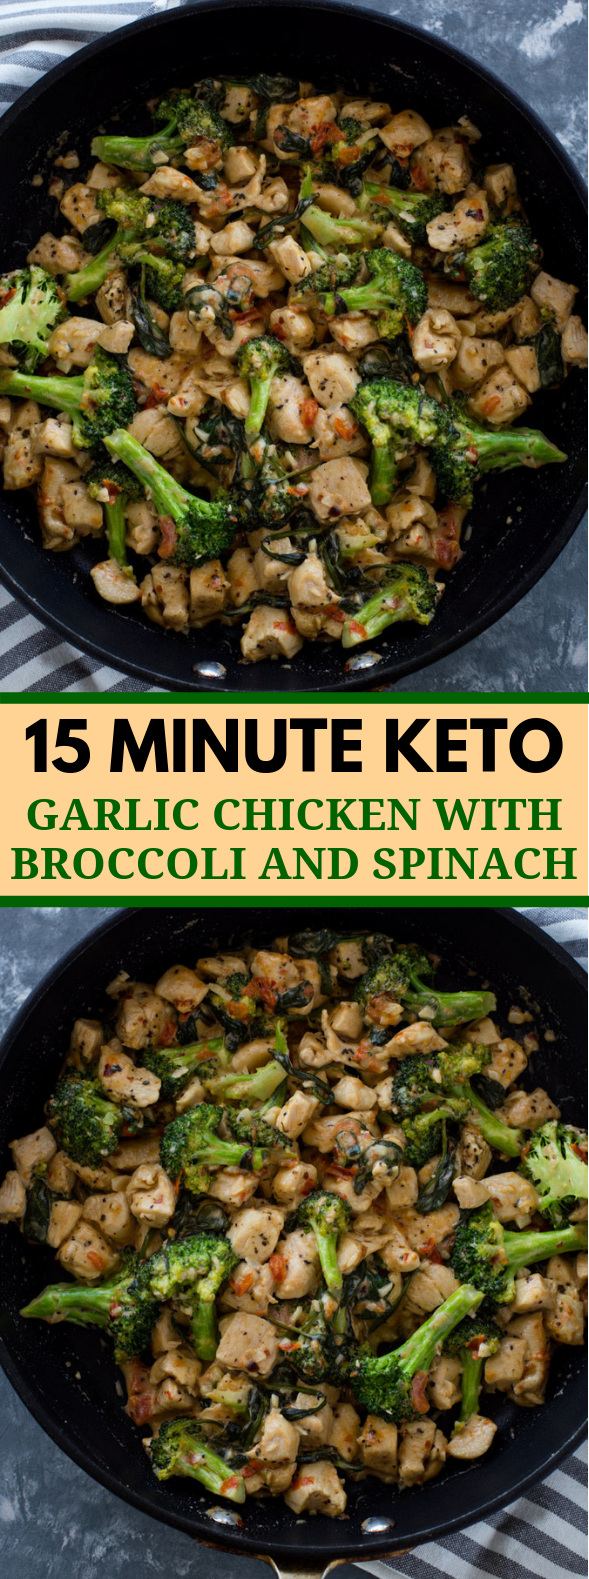 15 MINUTE KETO GARLIC CHICKEN WITH BROCCOLI AND SPINACH #ketodiet #lowcarb